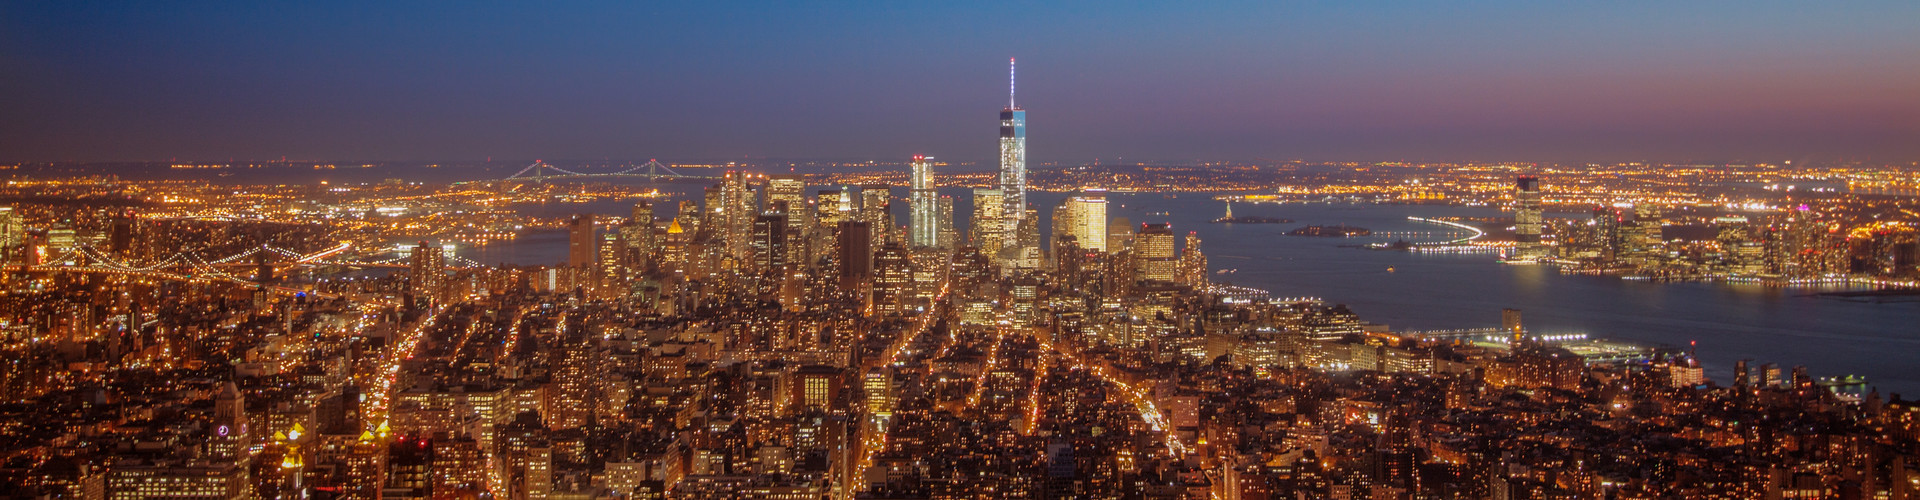 Travel to America with help of the America Travel Guide by Our Planet in my Lens